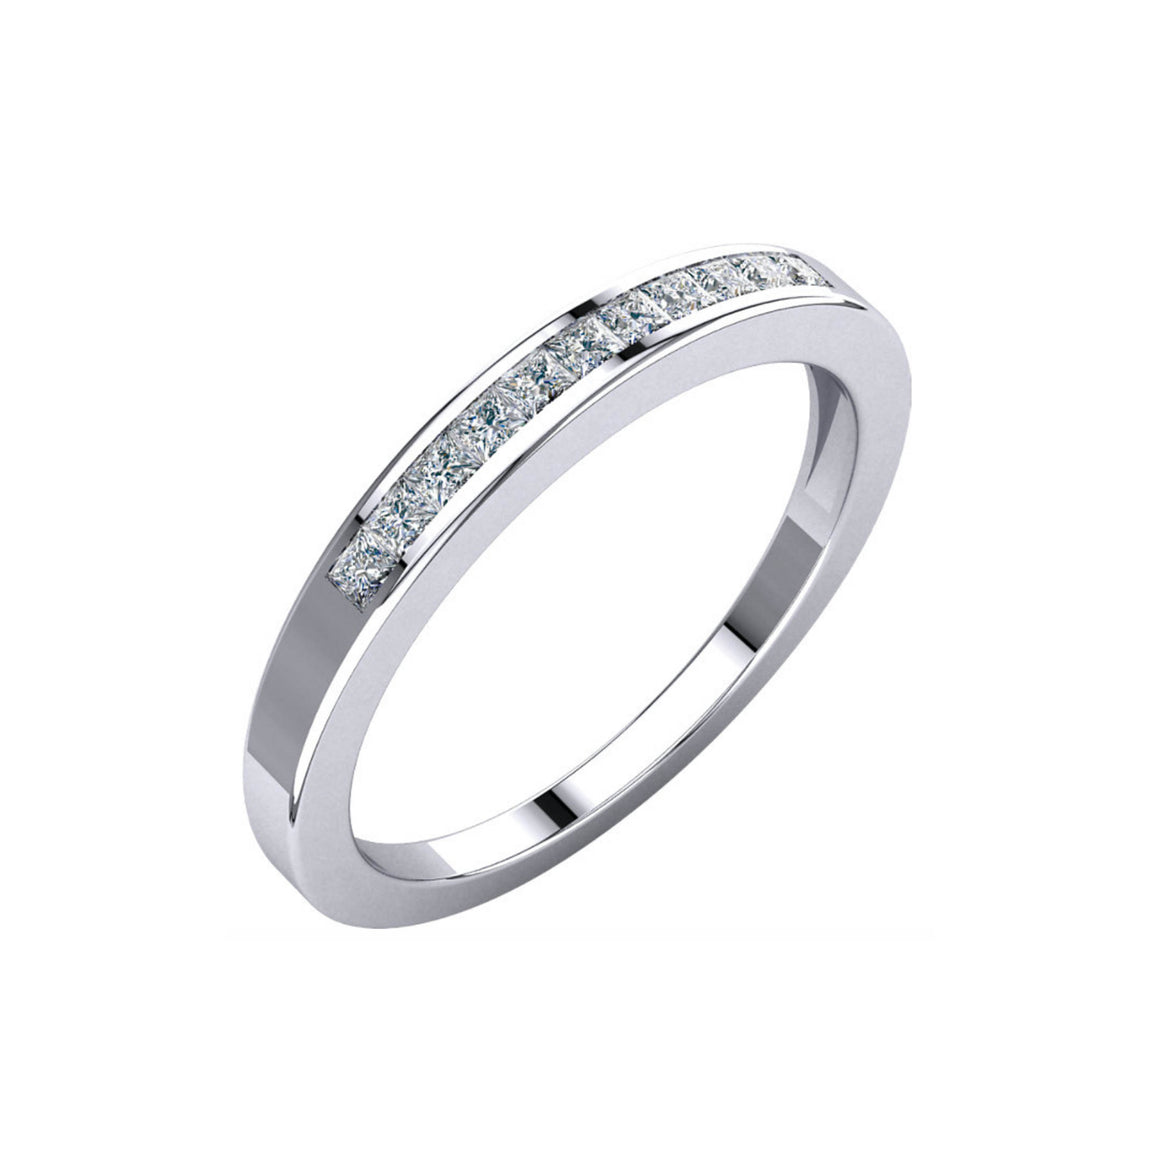 Channel Set, Princess-Cut Diamond Anniversary Stack Band in White, Yellow or Rose Gold - Talisman Collection Fine Jewelers